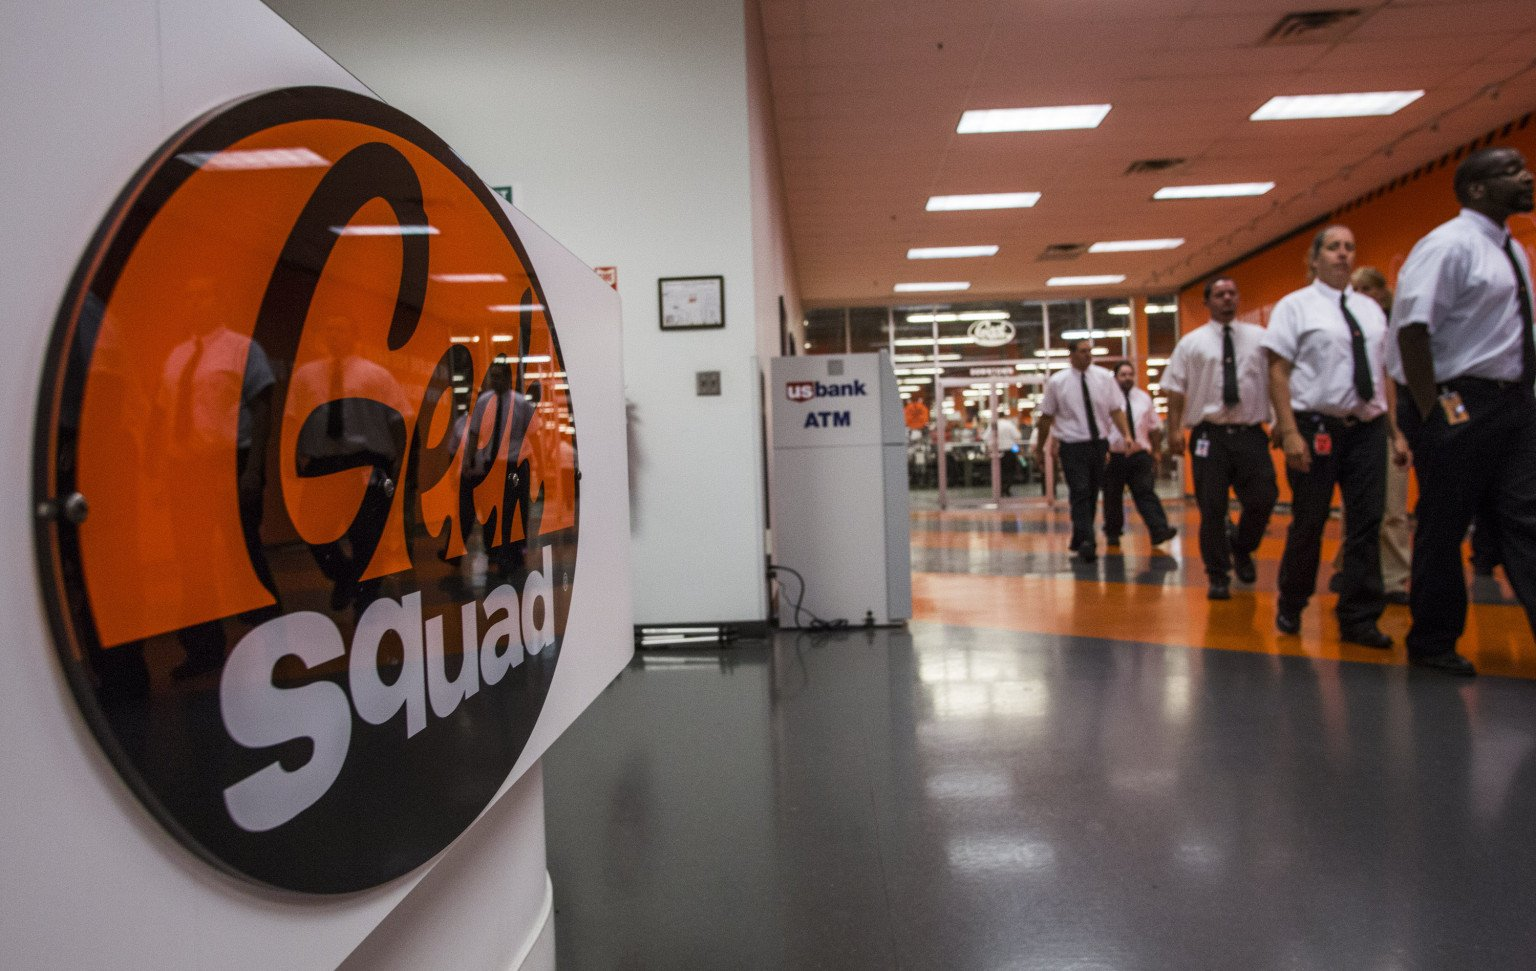 FBI Has Been Paying Geek Squad To Spy On Customers For Over A Decade